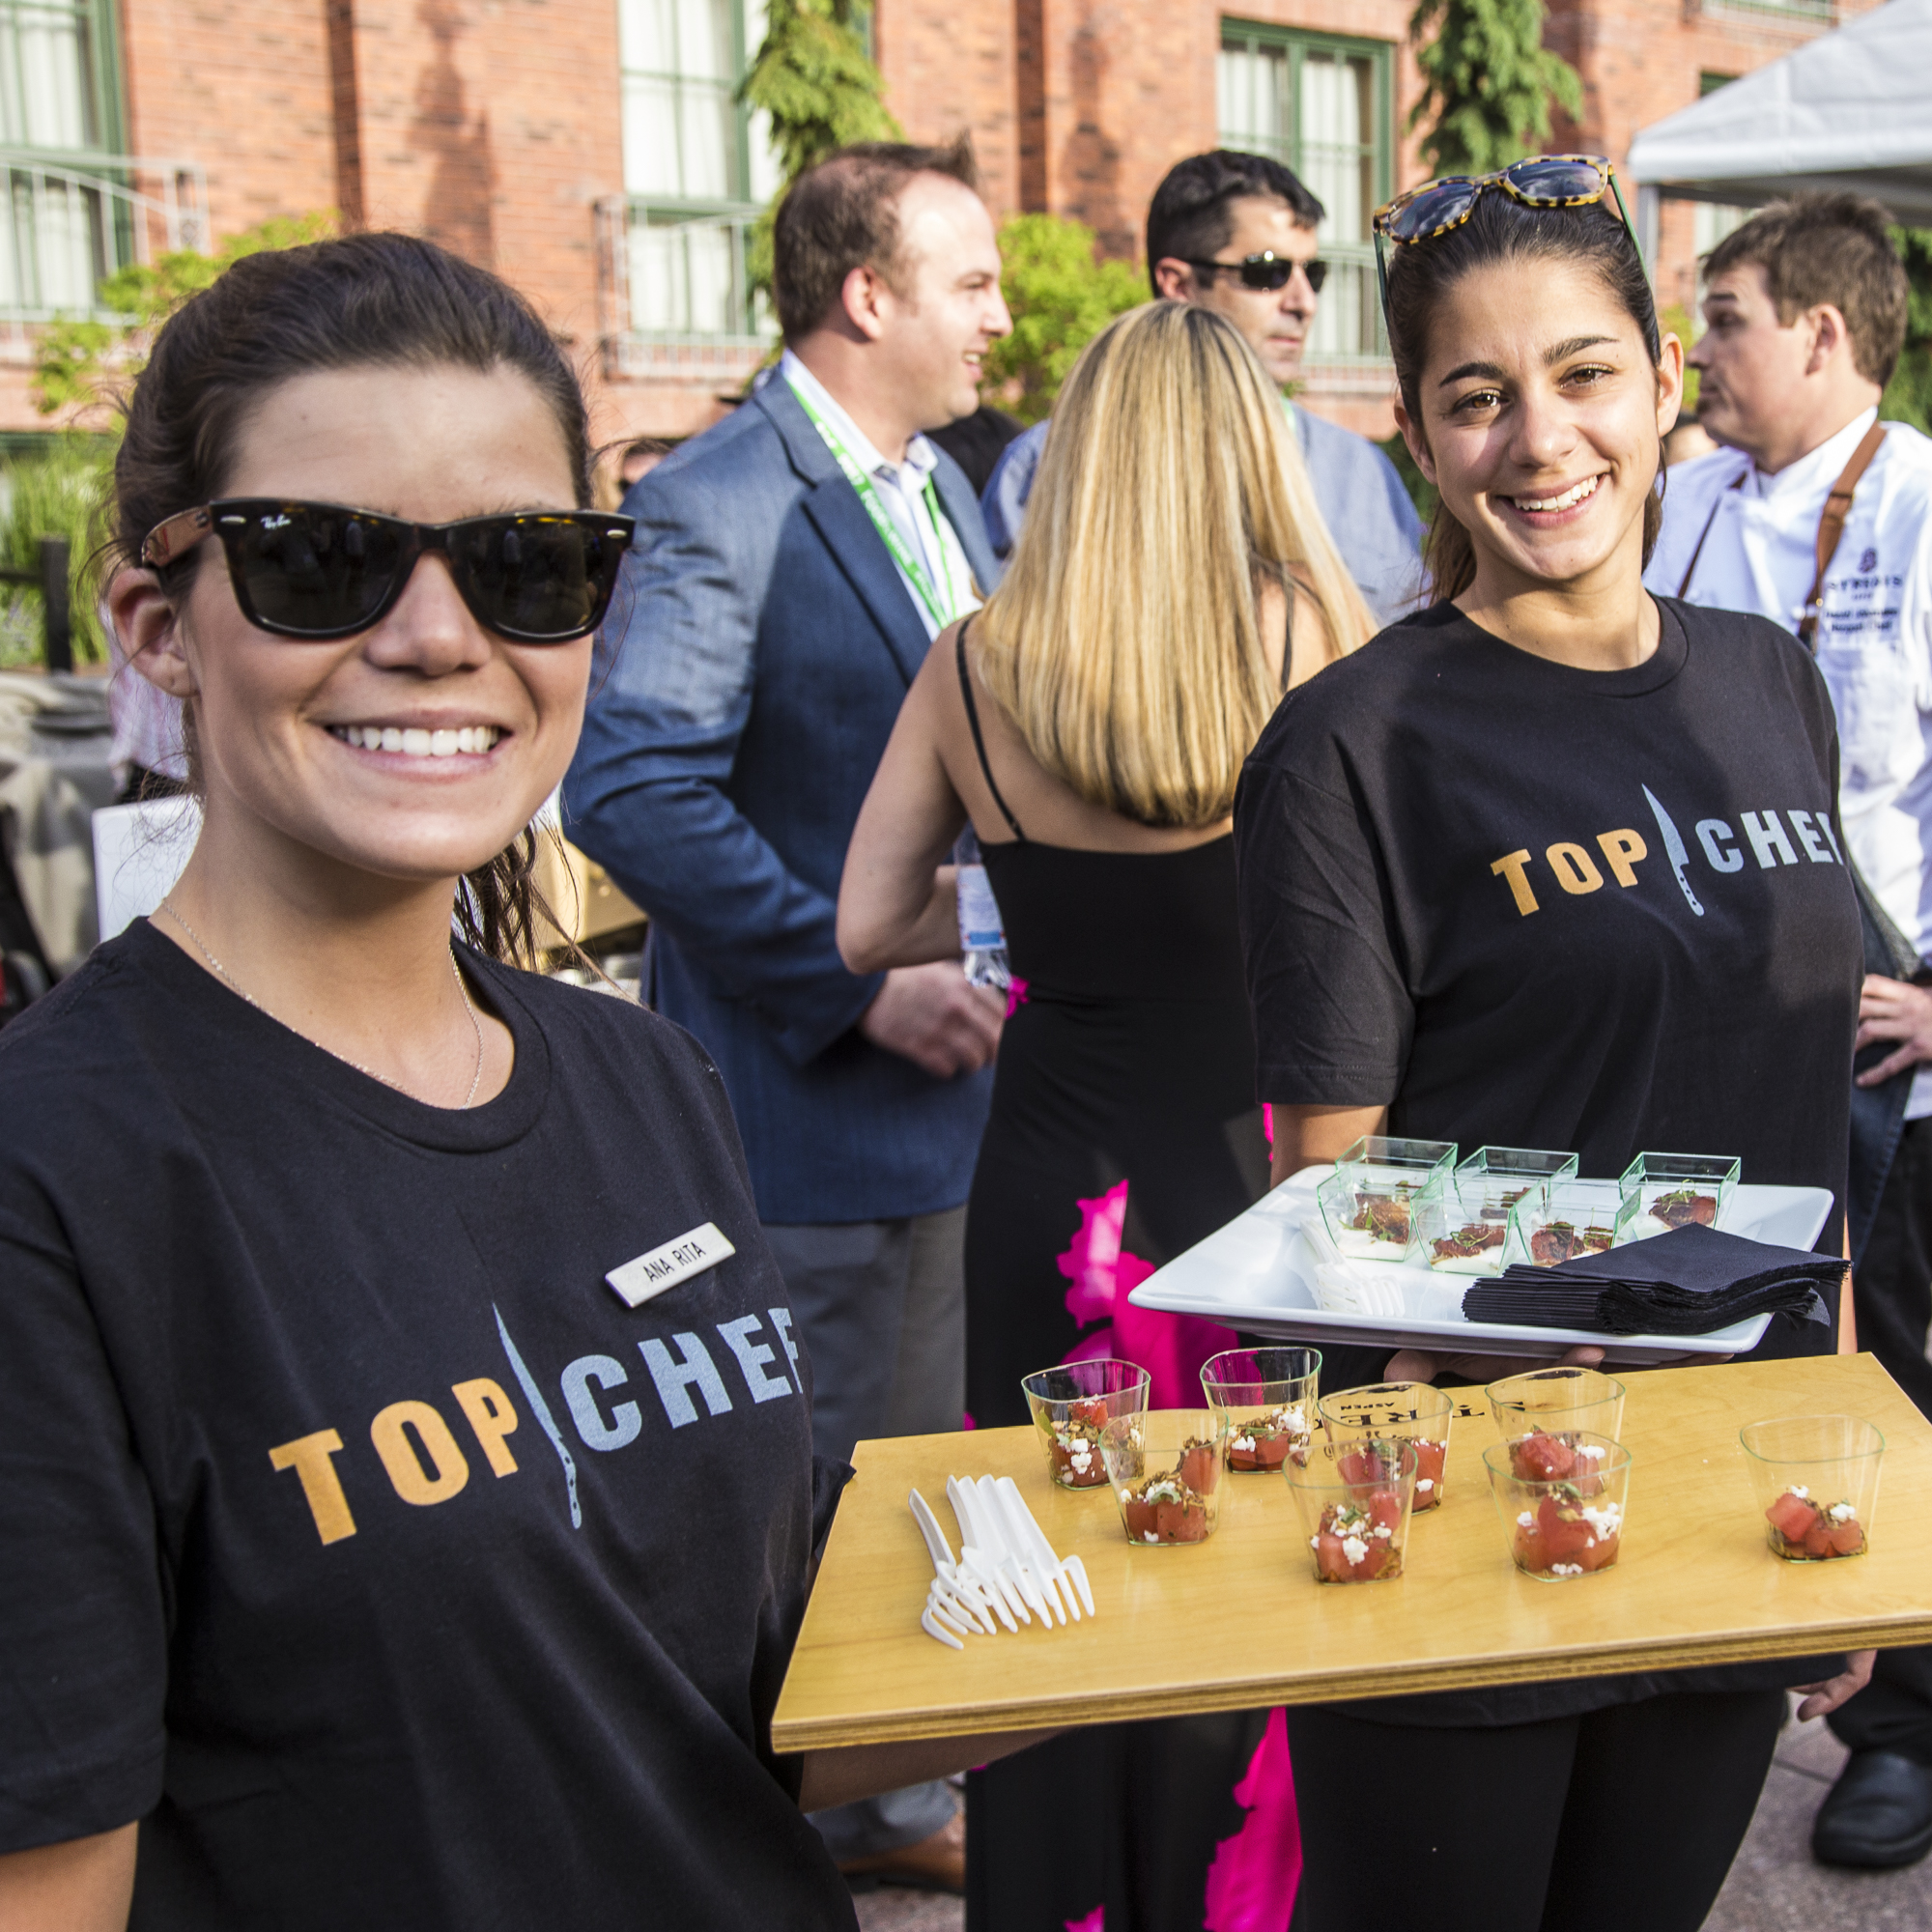 Top Chef small bites at the Food & Wine Classic in Aspen welcome reception